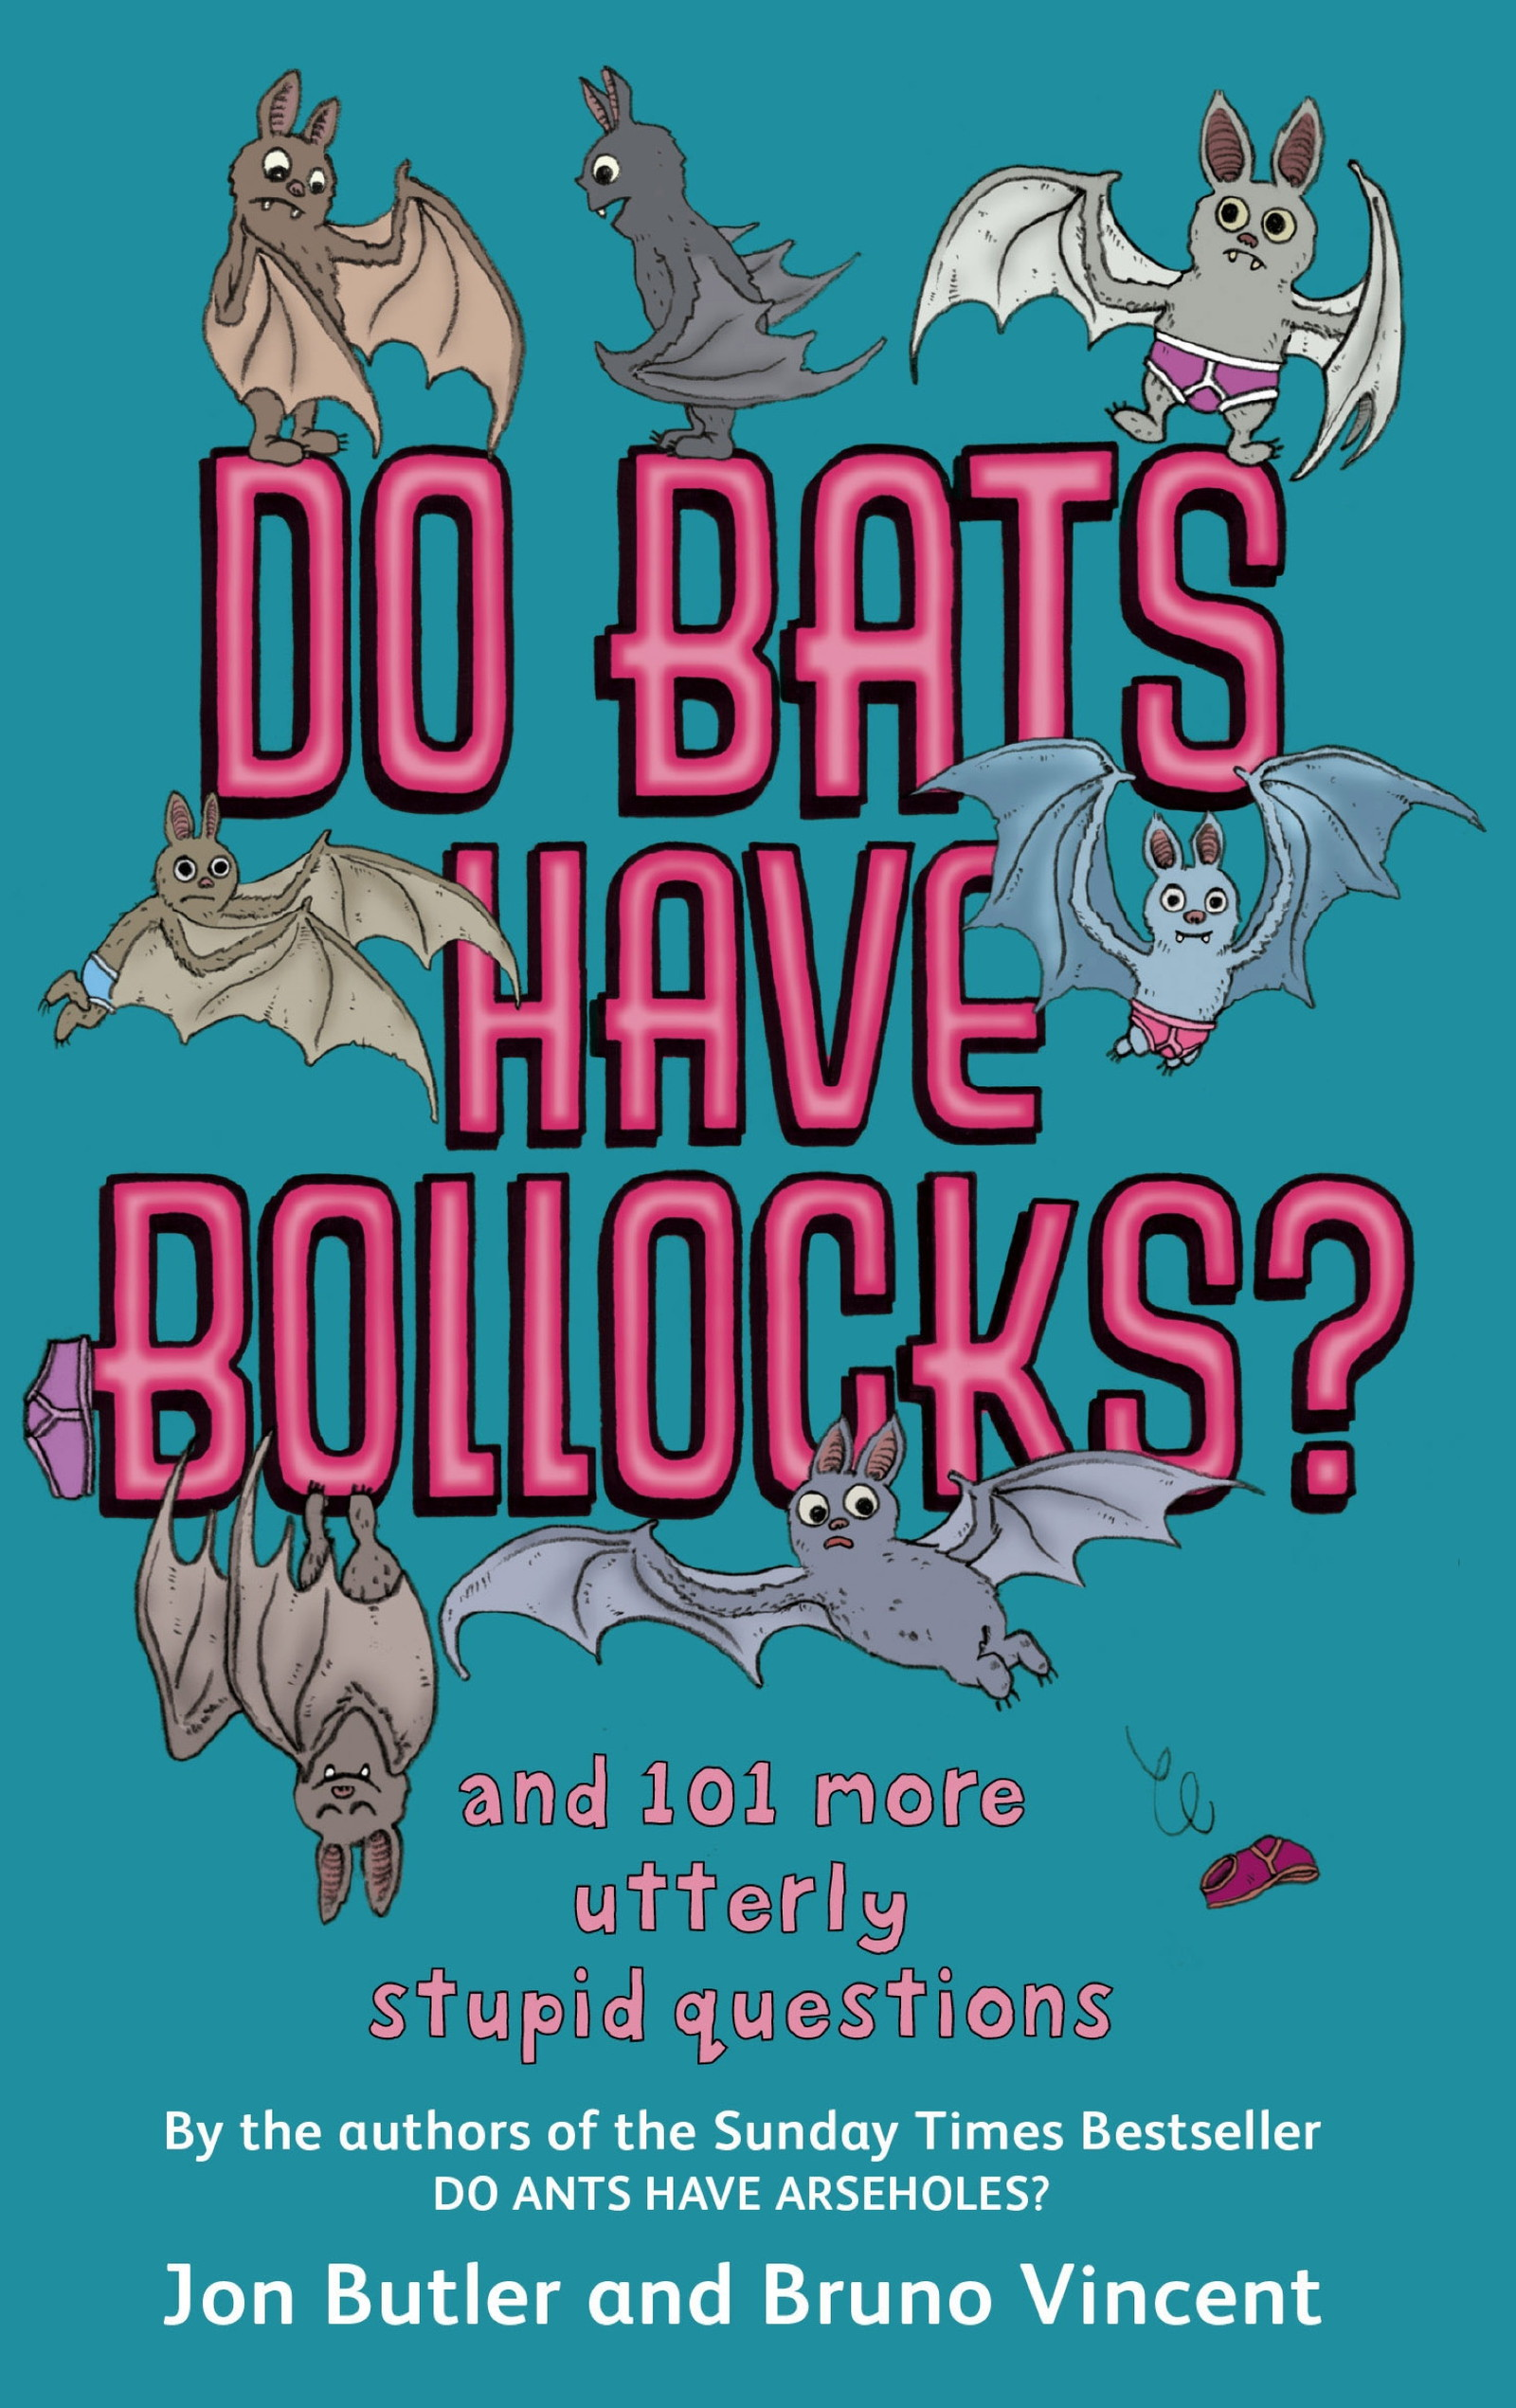 Do Bats Have Bollocks?